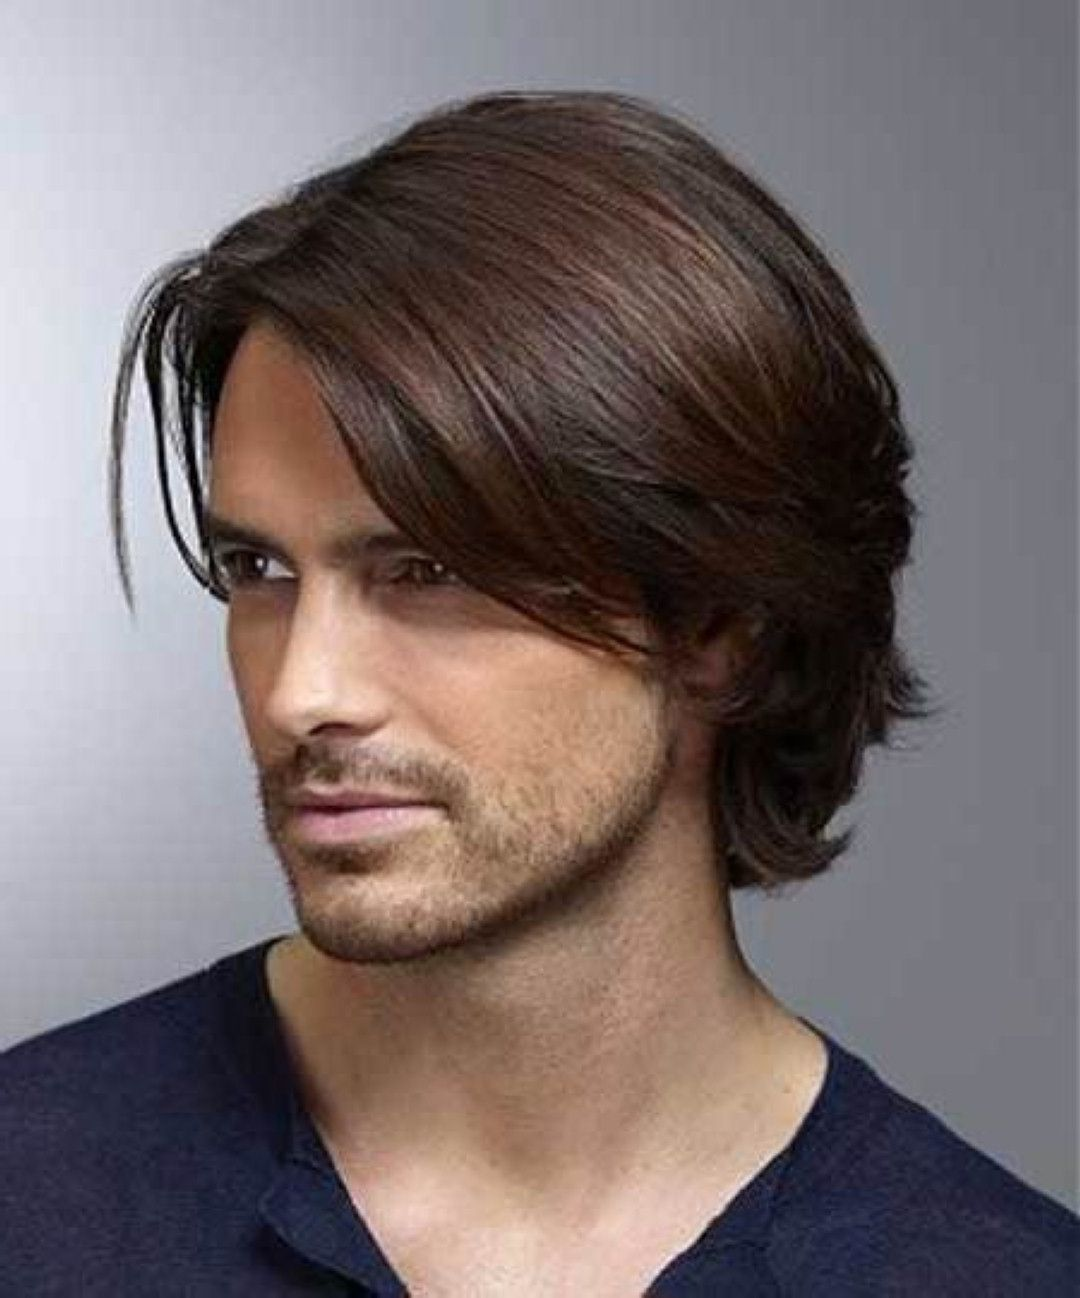 Hairstyle For Medium Length Hair For Men 1000 Images About Men Hairstyle On Pinterest Me Mens Hairstyles Medium Medium Length Hair Styles Medium Hair Styles